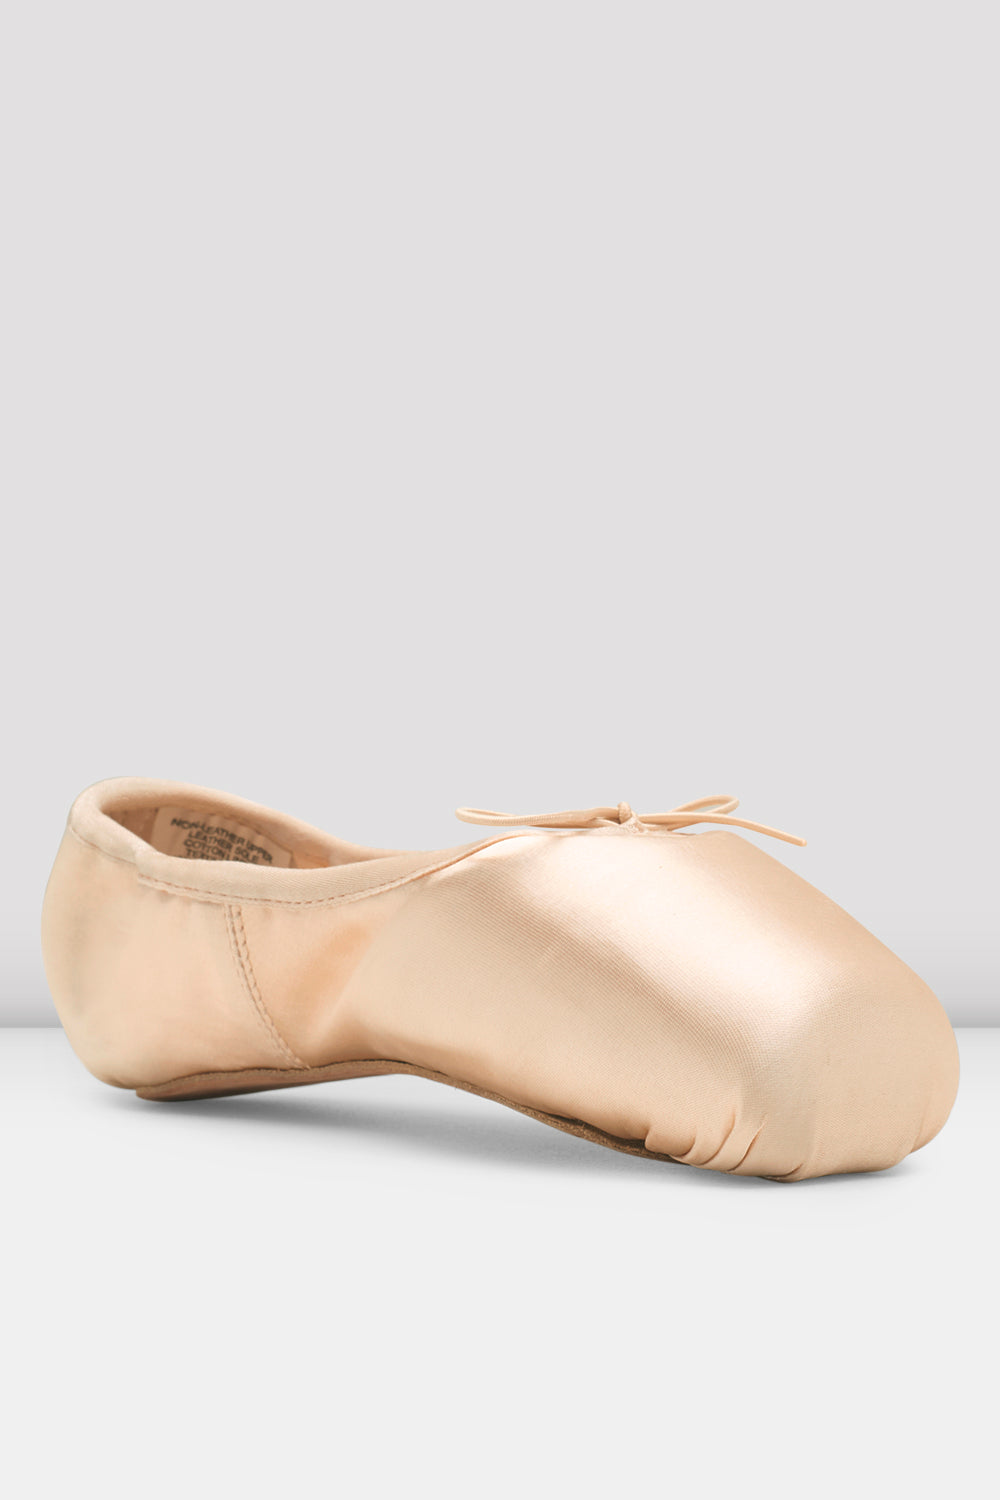 Synthesis Stretch Pointe Chaussures